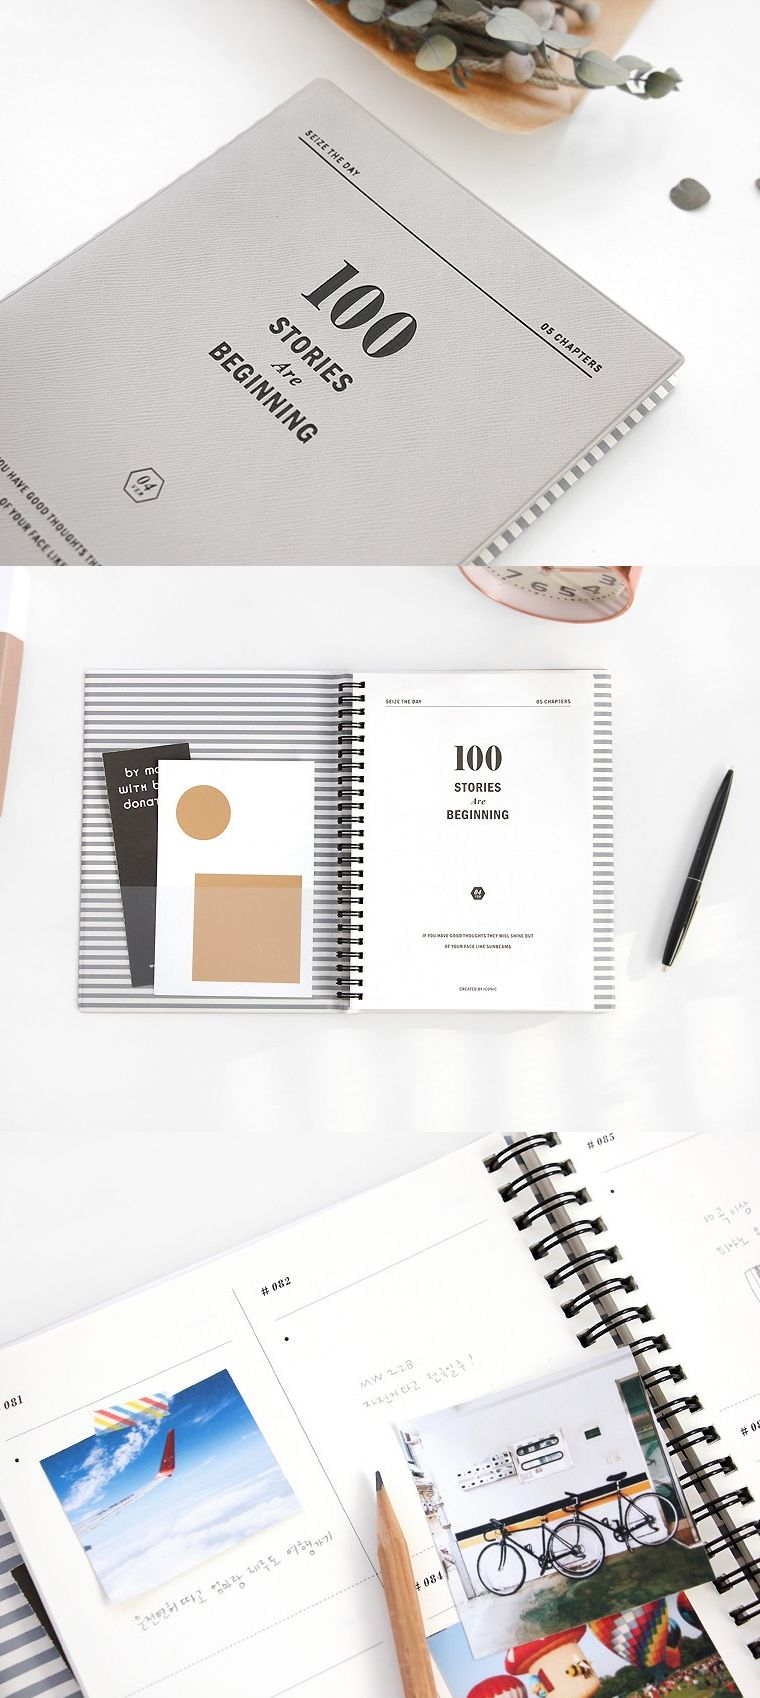 ... make it a planner, make it 100 special memories that will last you a  lifetime. Newly updated versions of our beloved 100 Stories Seize the Day  Notebook ...